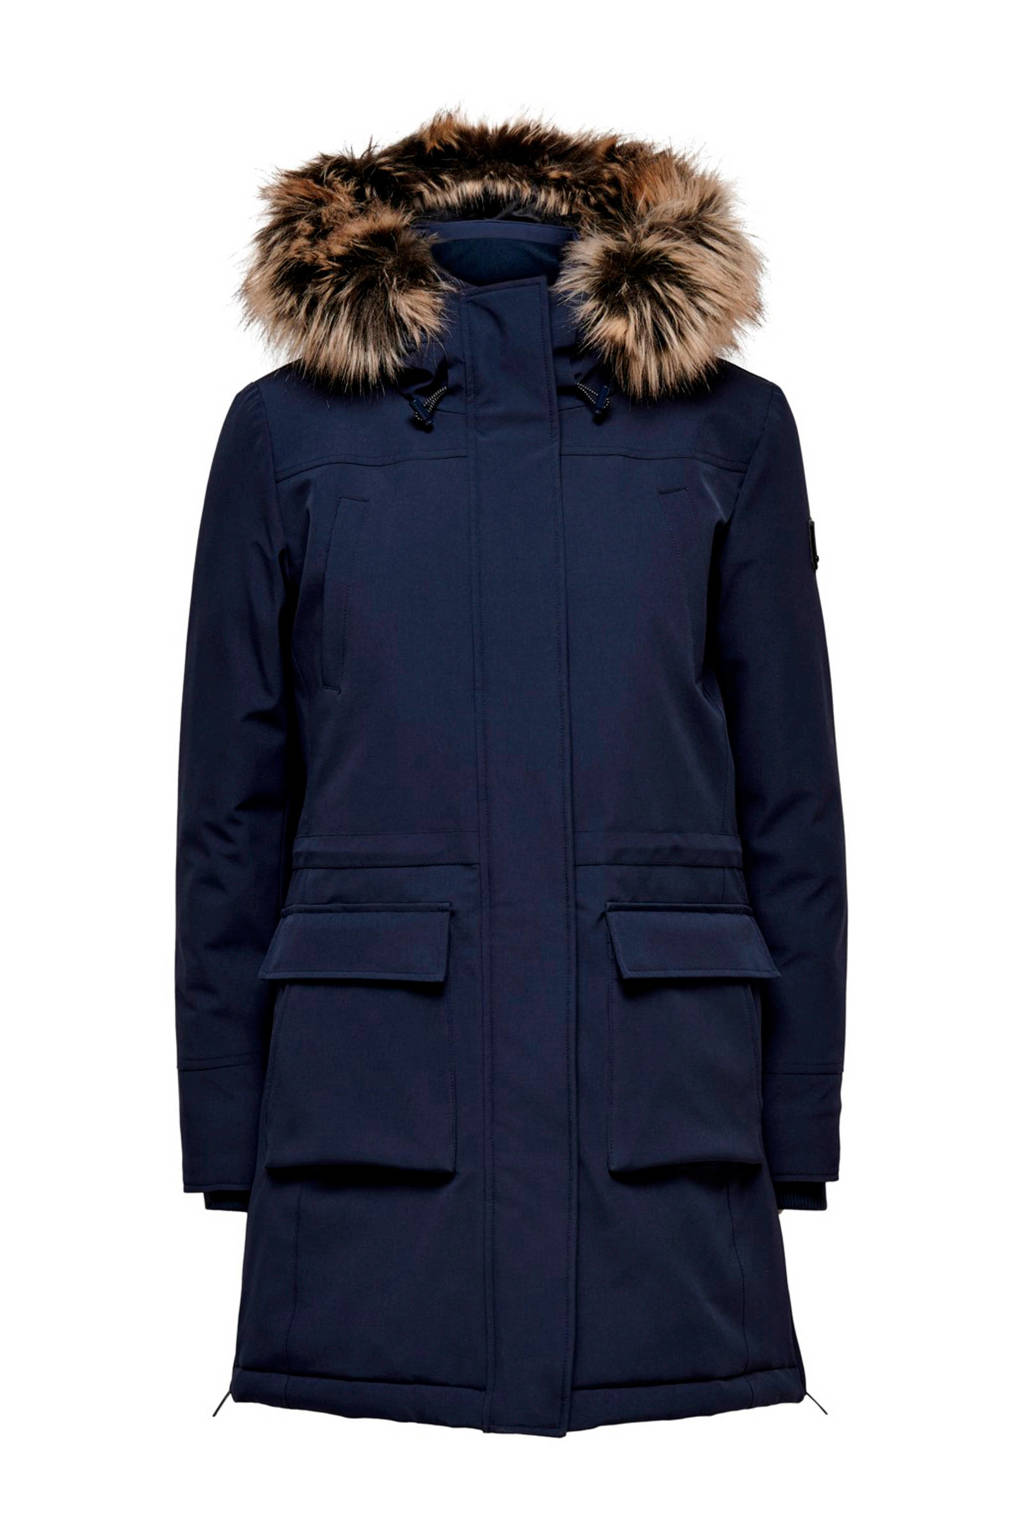 ONLY parka donkerblauw, Donkerblauw